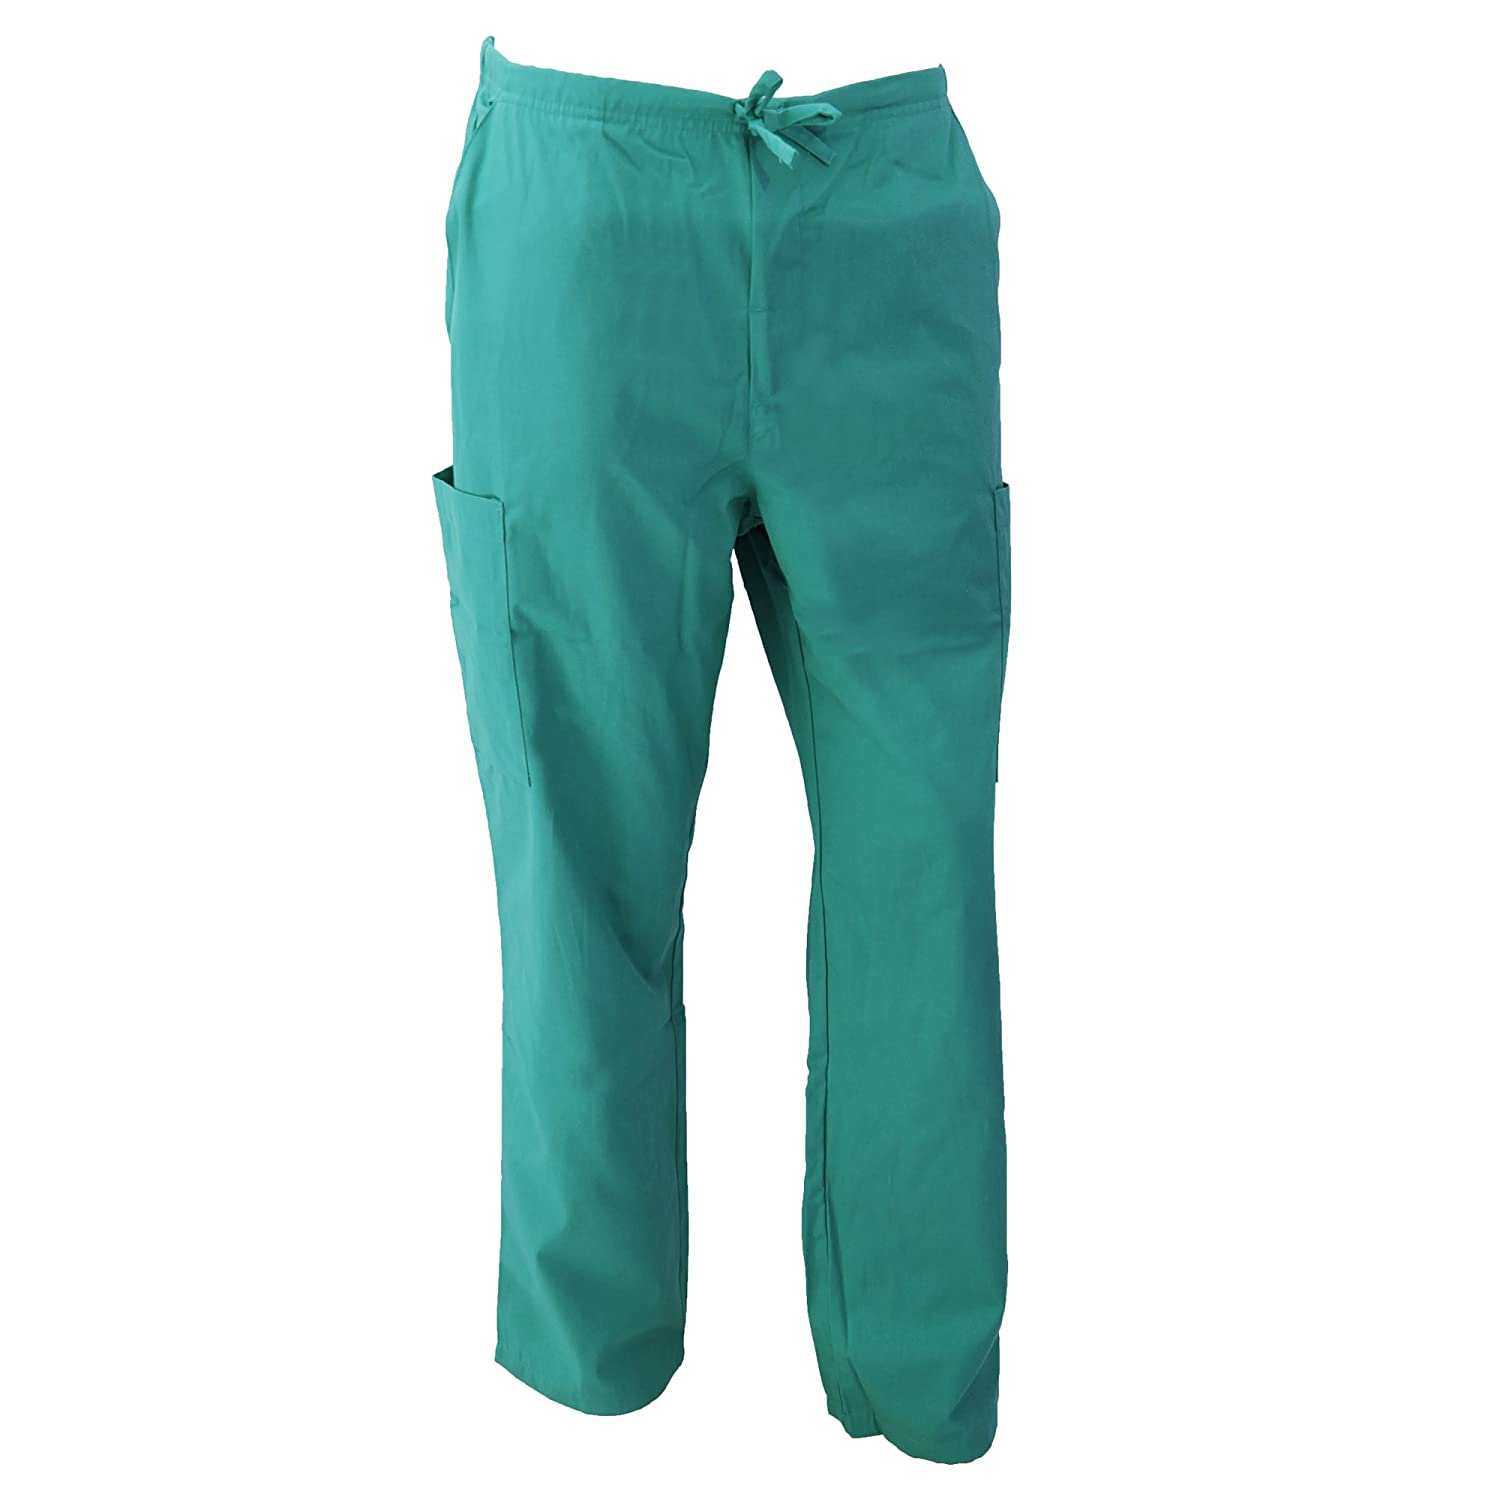 Dickies Drawstring Trousers/Unisex Medical Wear